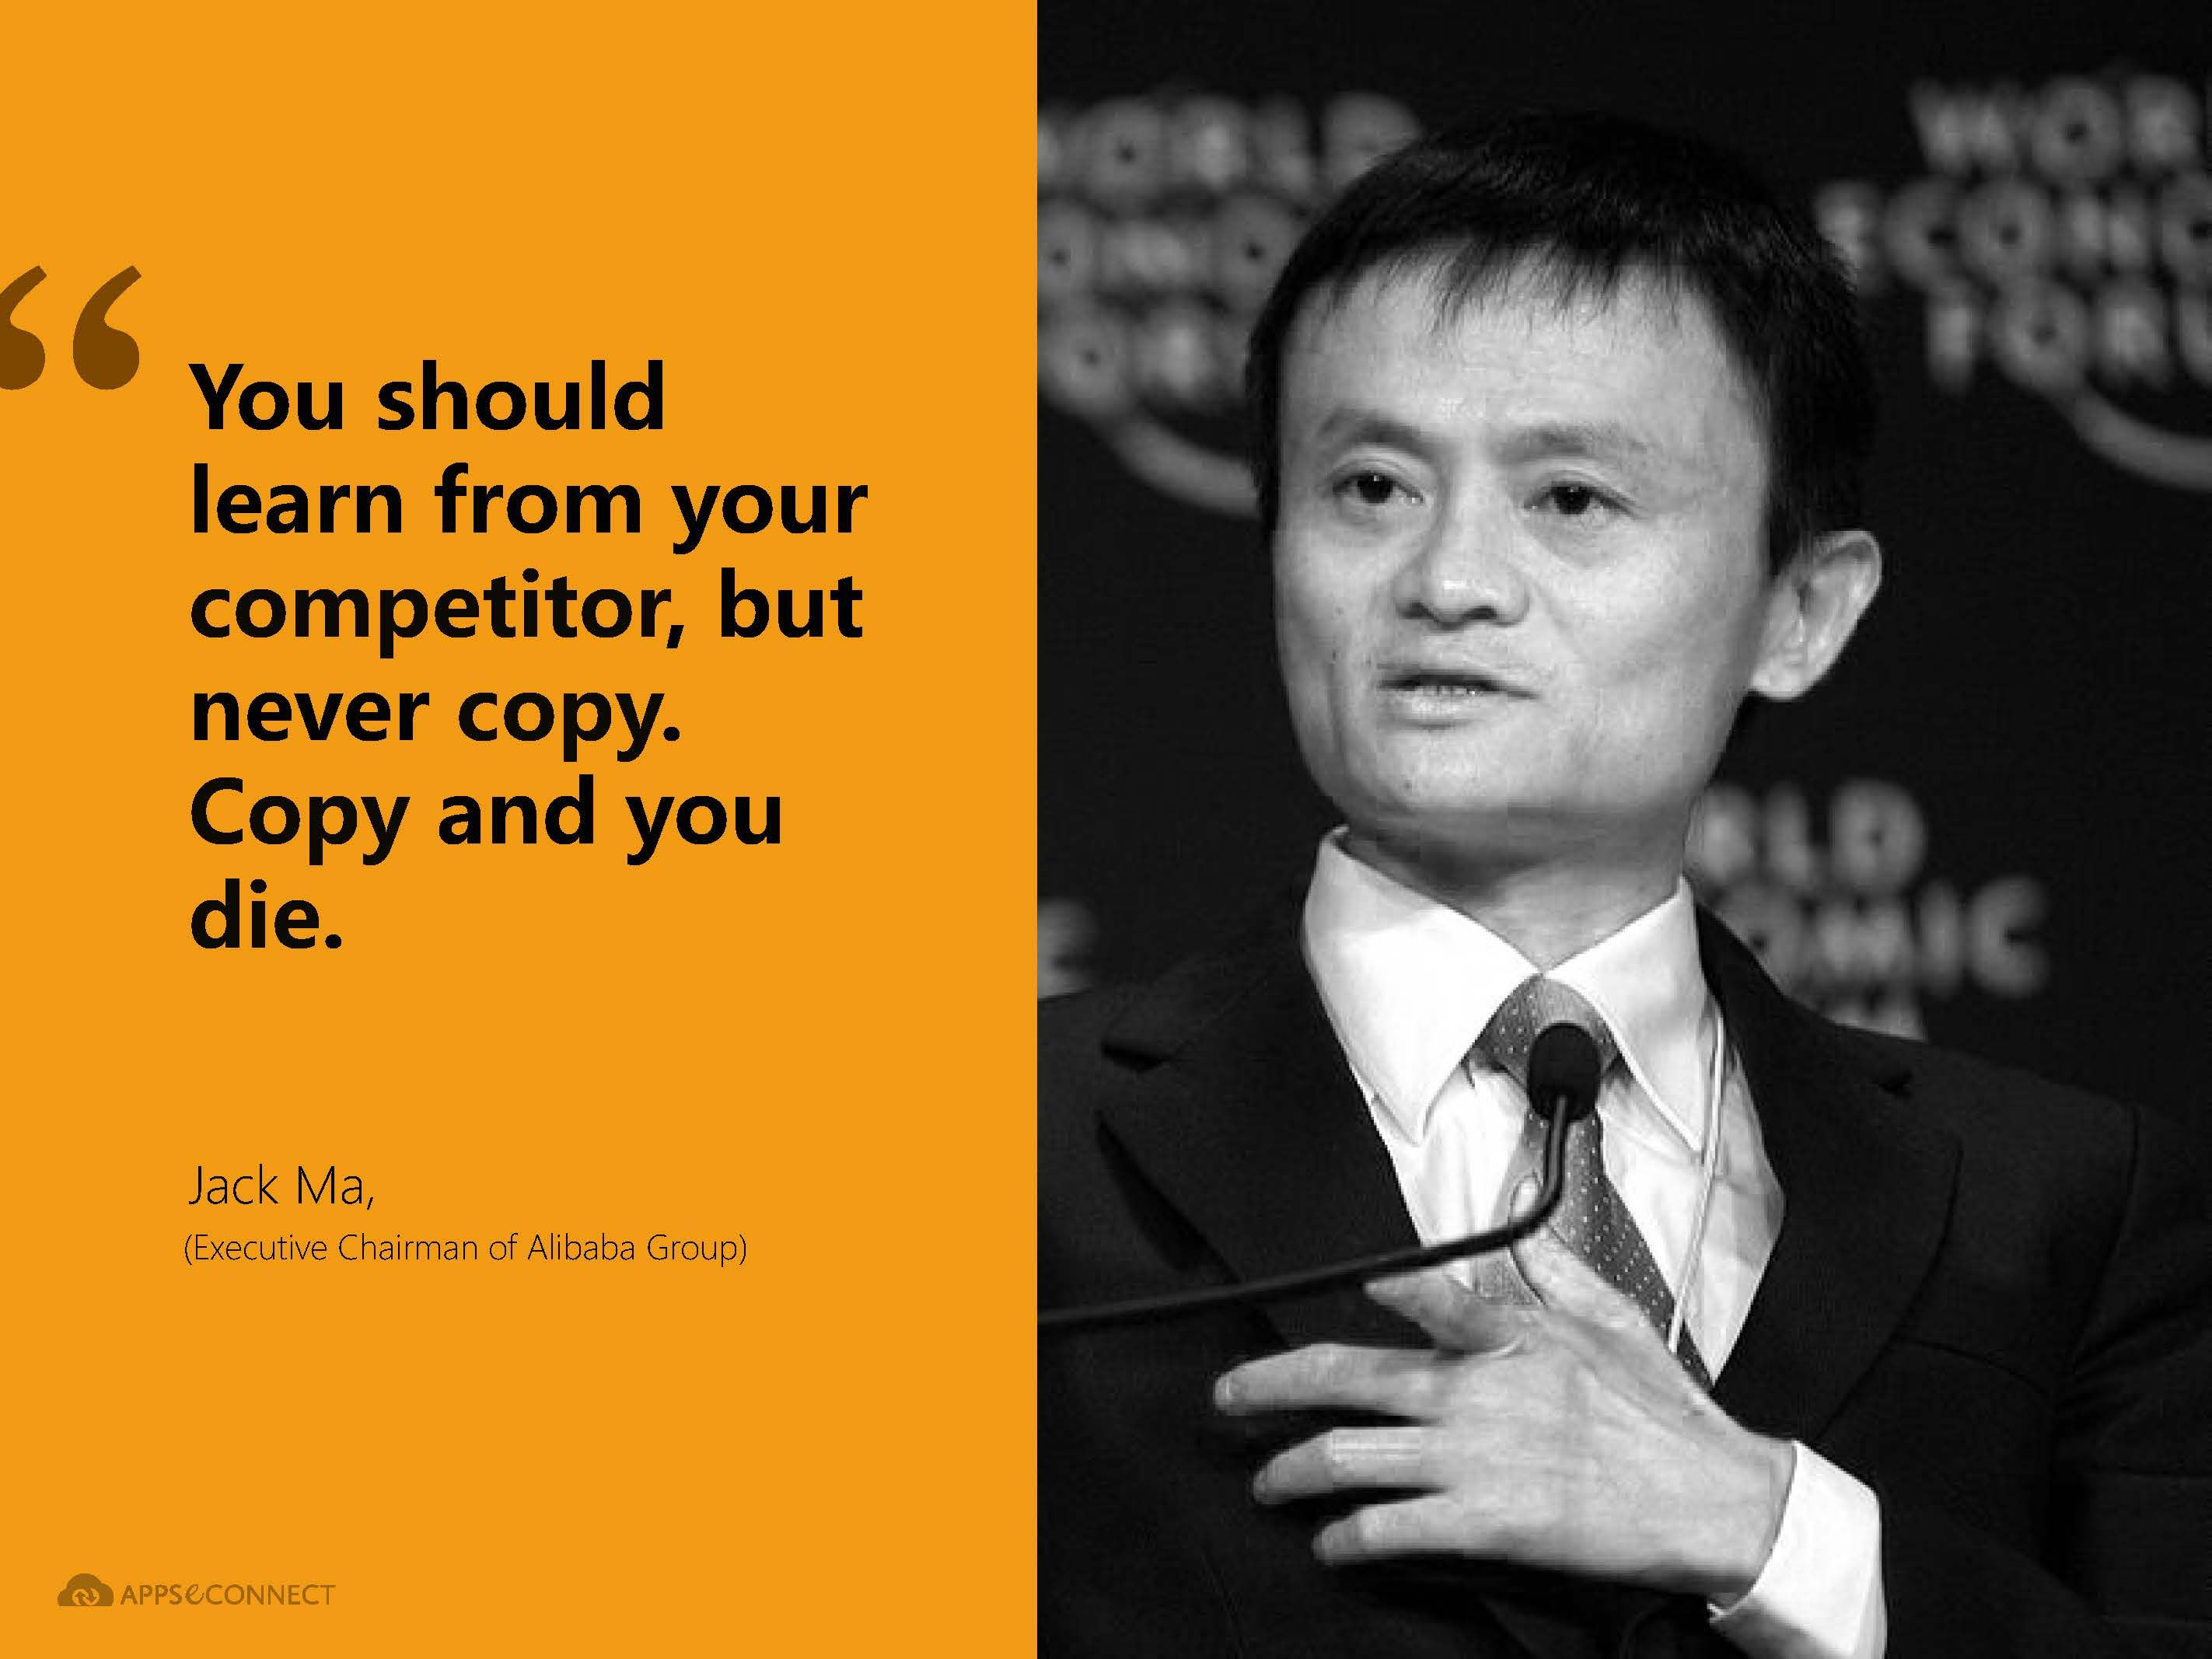 Quotes From Jackma Executive Chairman Of Alibabagroup Business Inspiration Quotes Motivational Picture Quotes Financial Quotes